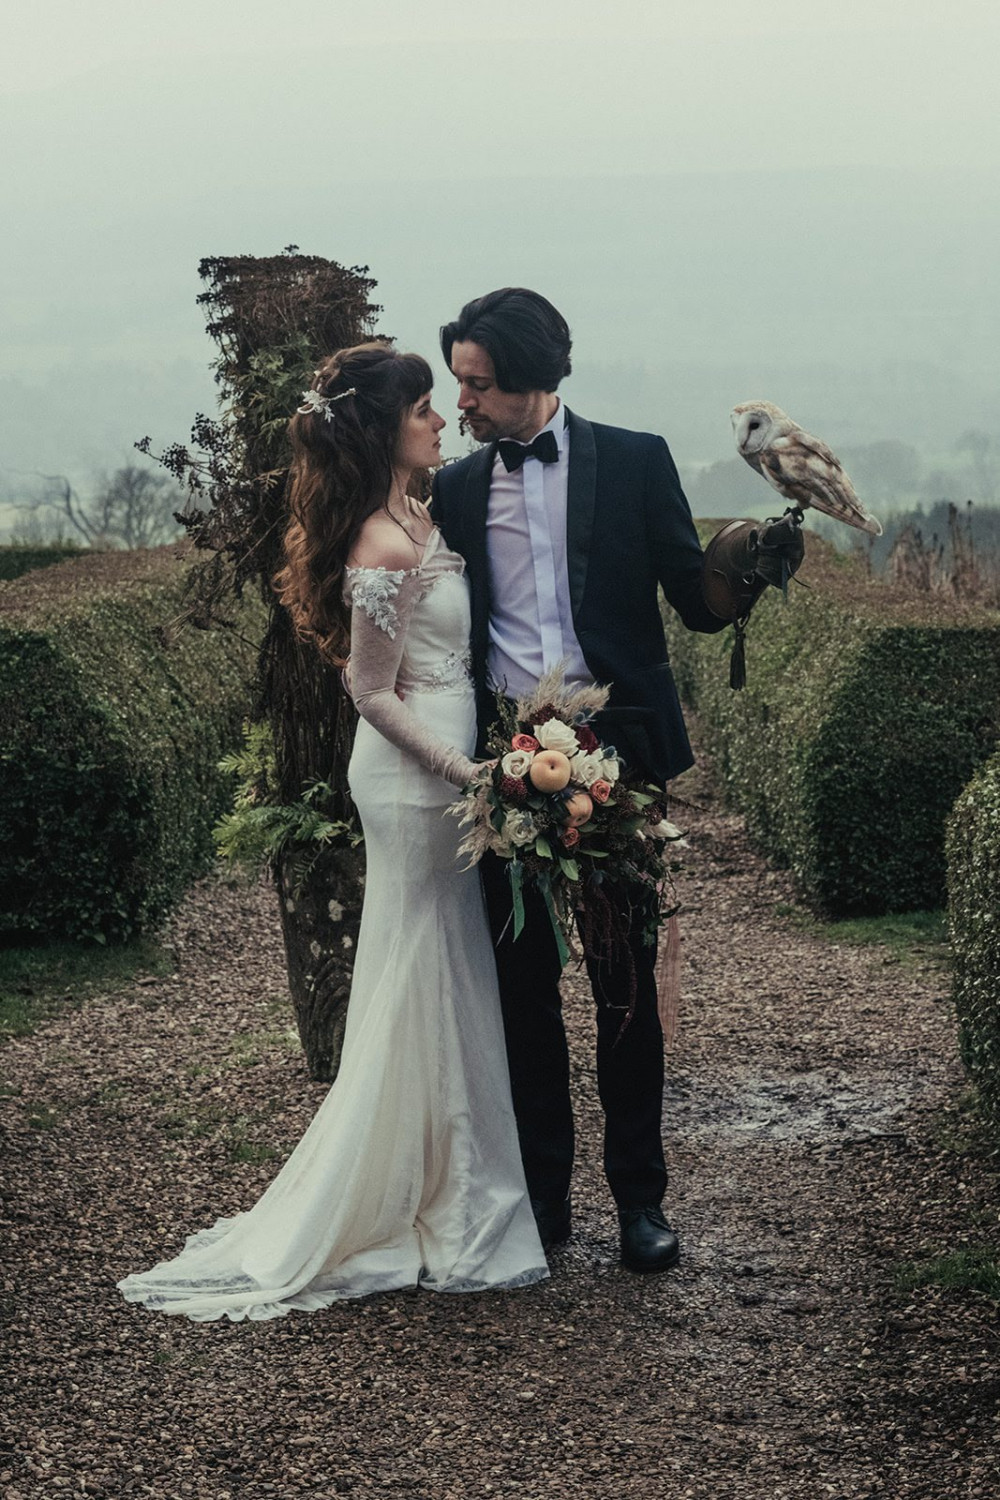 Labyrinth Inspired styled shoot, hair & make up by Nicola. - Make Me Bridal Artist: Nicola Whitfield MUA. Photography by: Keiron Paul Photography. #naturalmakeup #halfuphair #hairvine #bridalmakeup #styledshoot